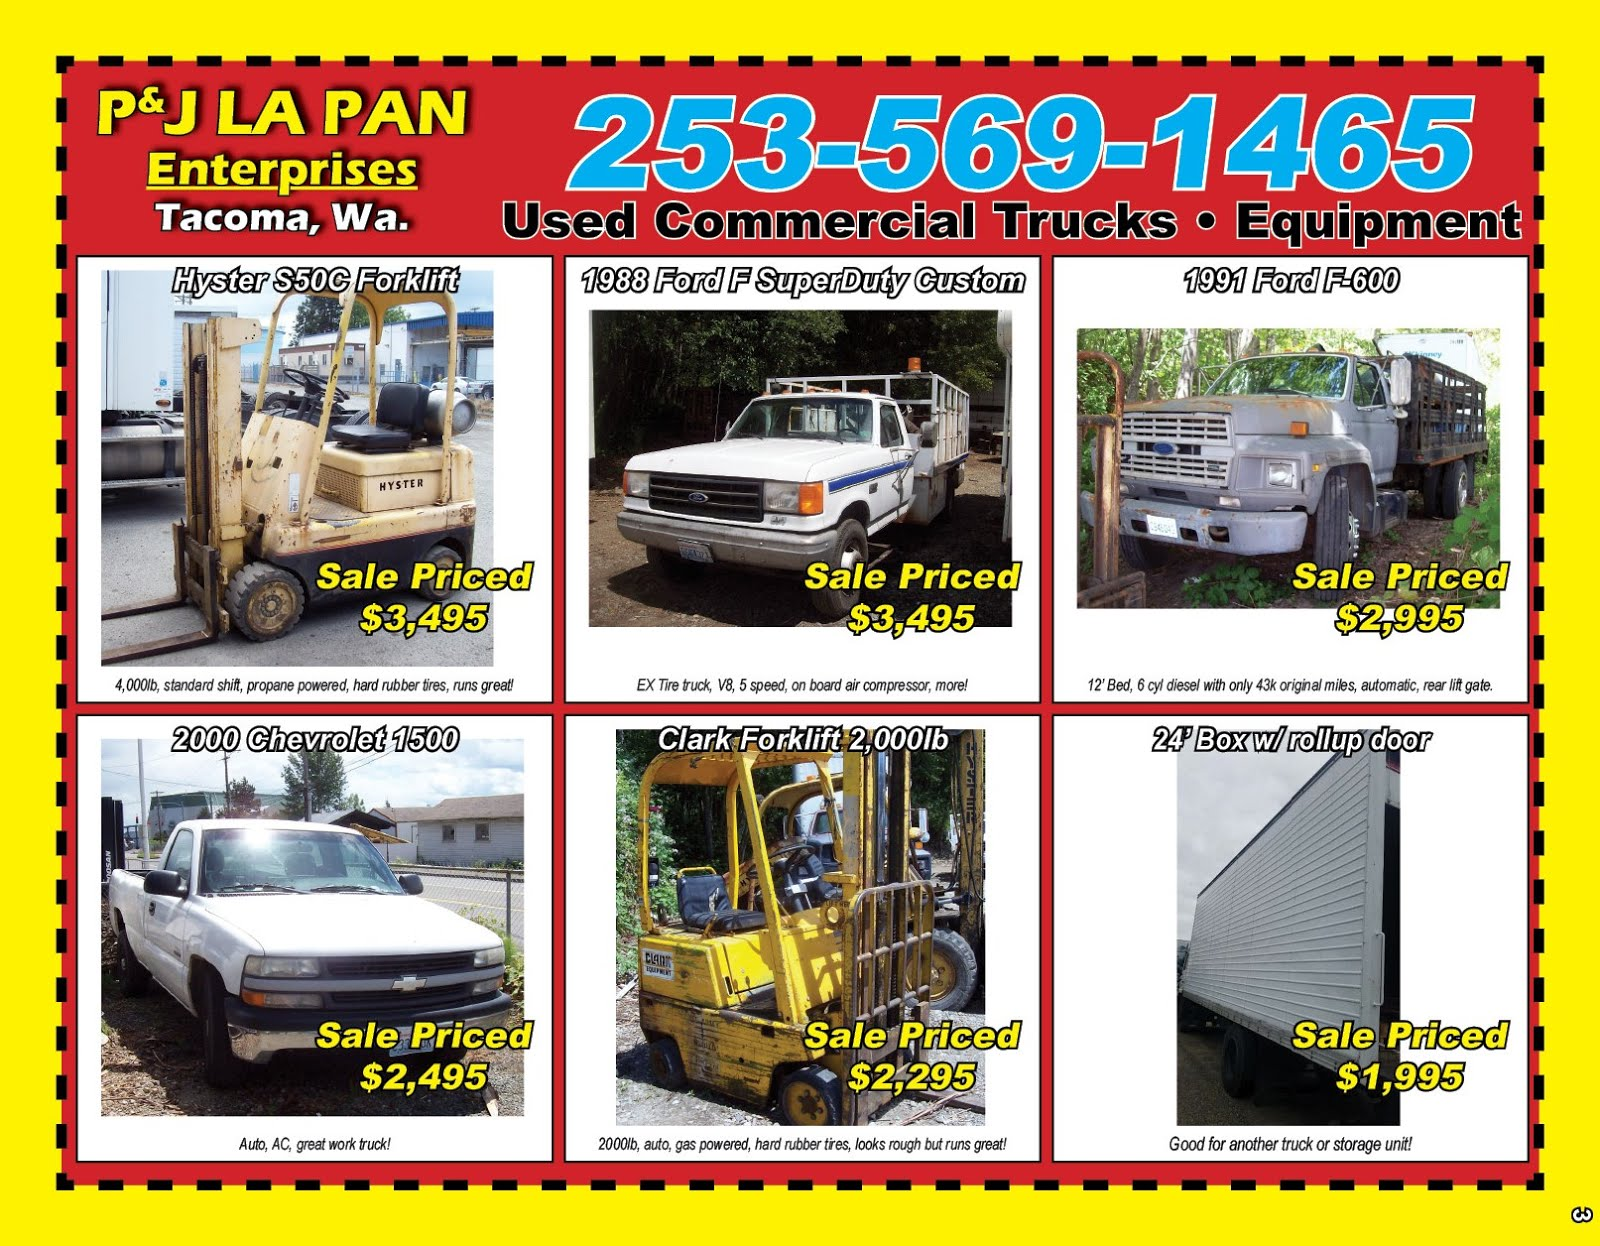 PJ LaPan Enterprises: Used Commercial Equipment & Truck Sales